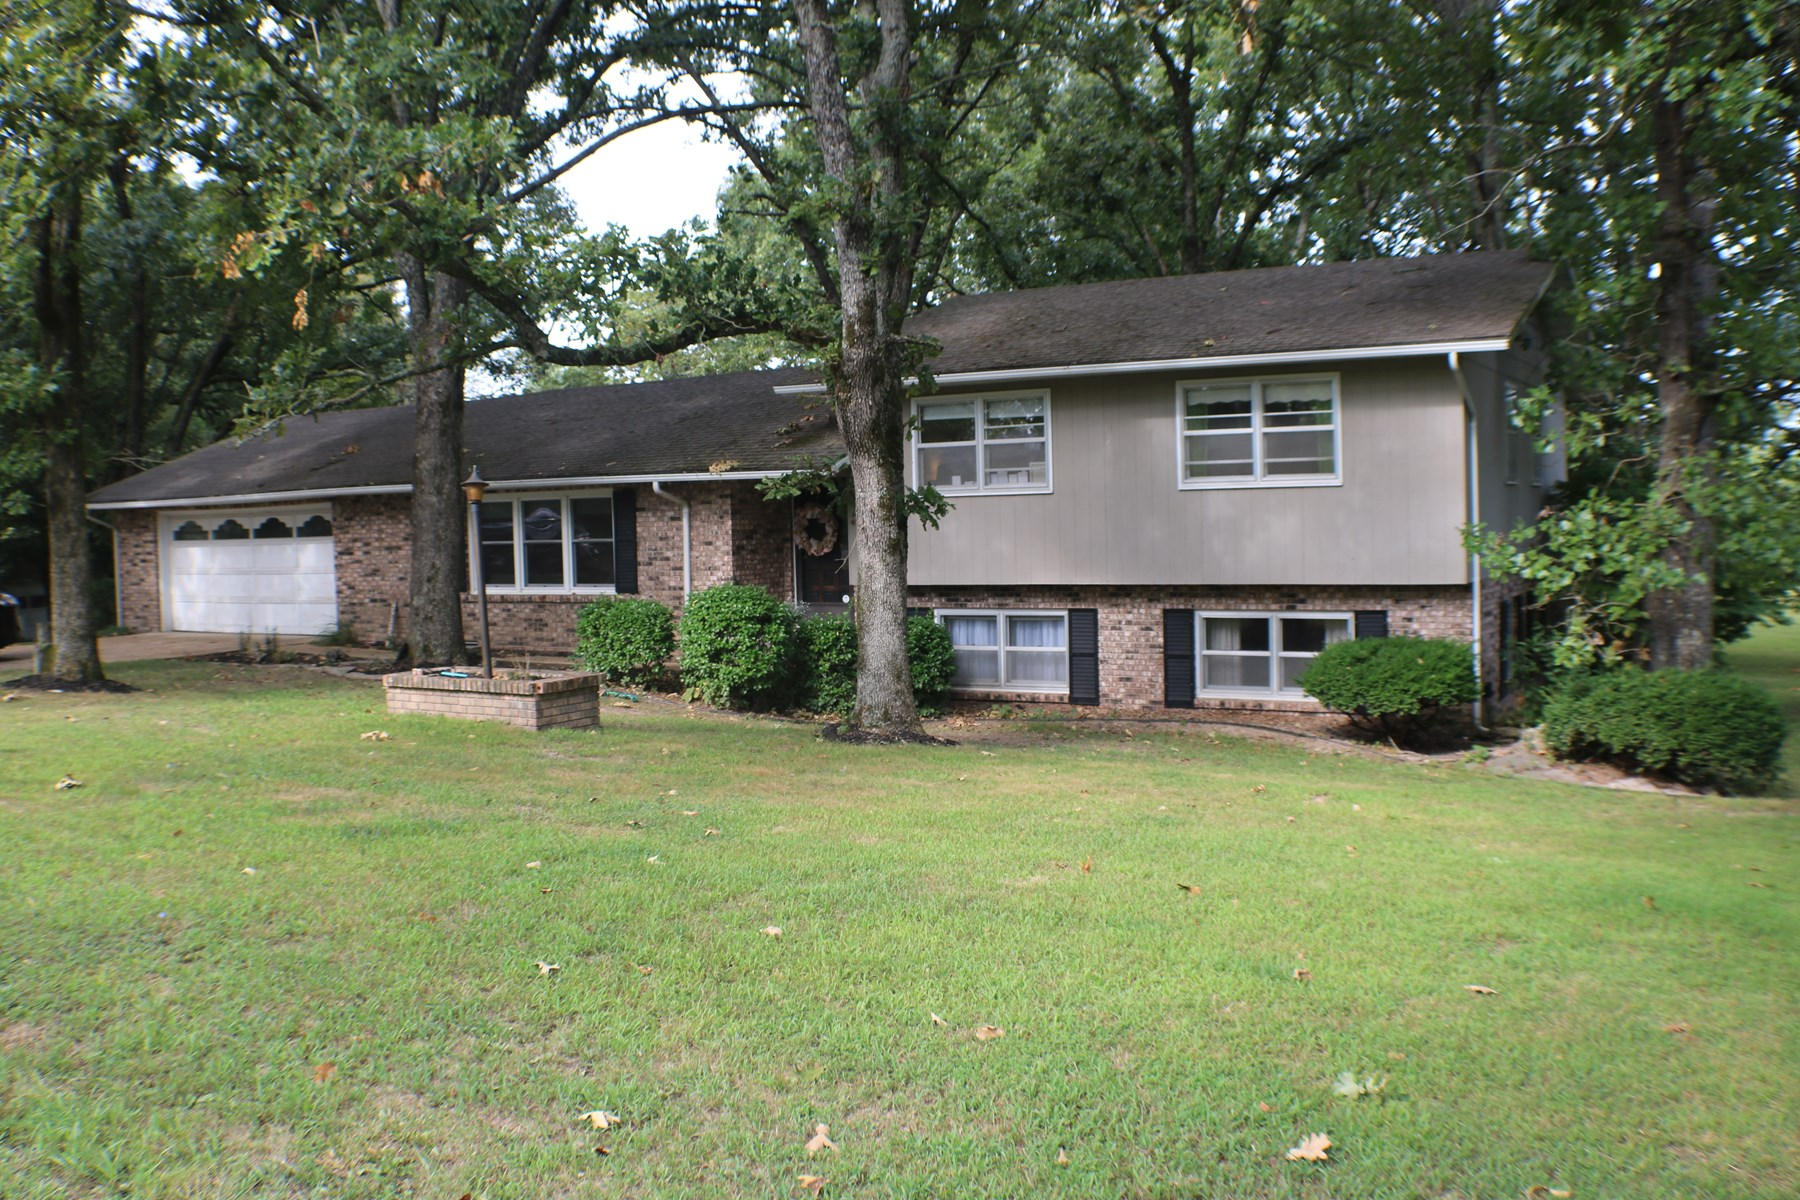 House with small acreage for sale, Ava mo